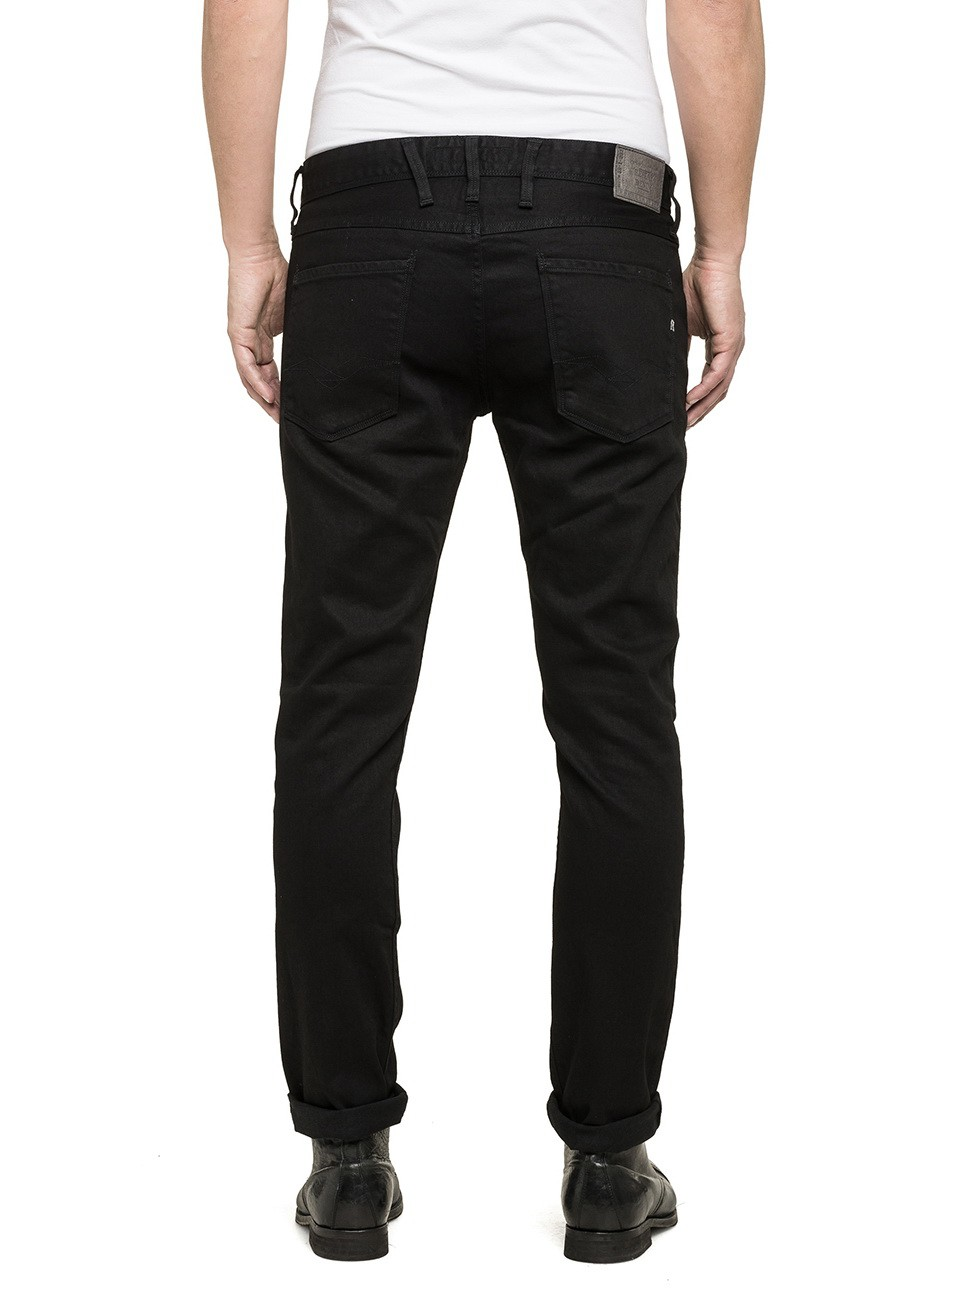 replay herren jeans anbass m914 473 07s slim fit black ebay. Black Bedroom Furniture Sets. Home Design Ideas